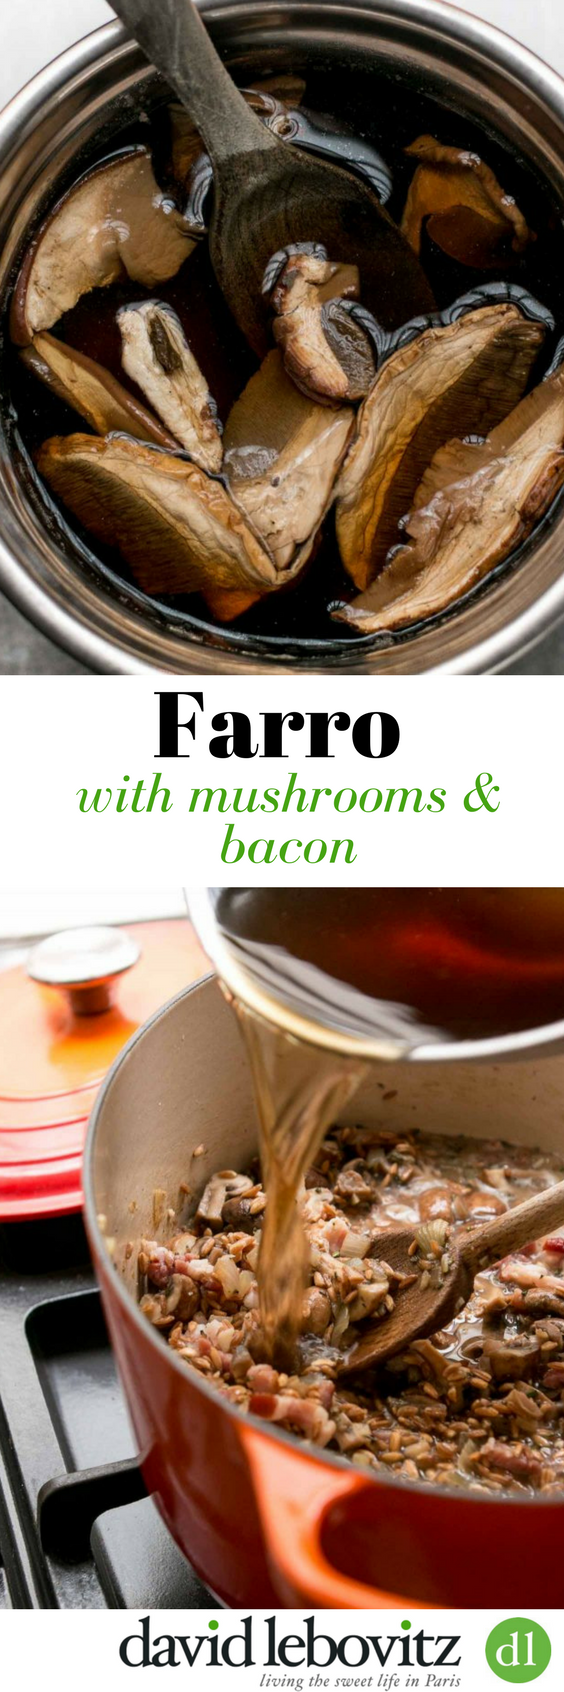 A simple farro recipe, loaded with earthy mushrooms and meaty bacon. A complete dinner in one pot! Can be made in advance and reheats beautifully!